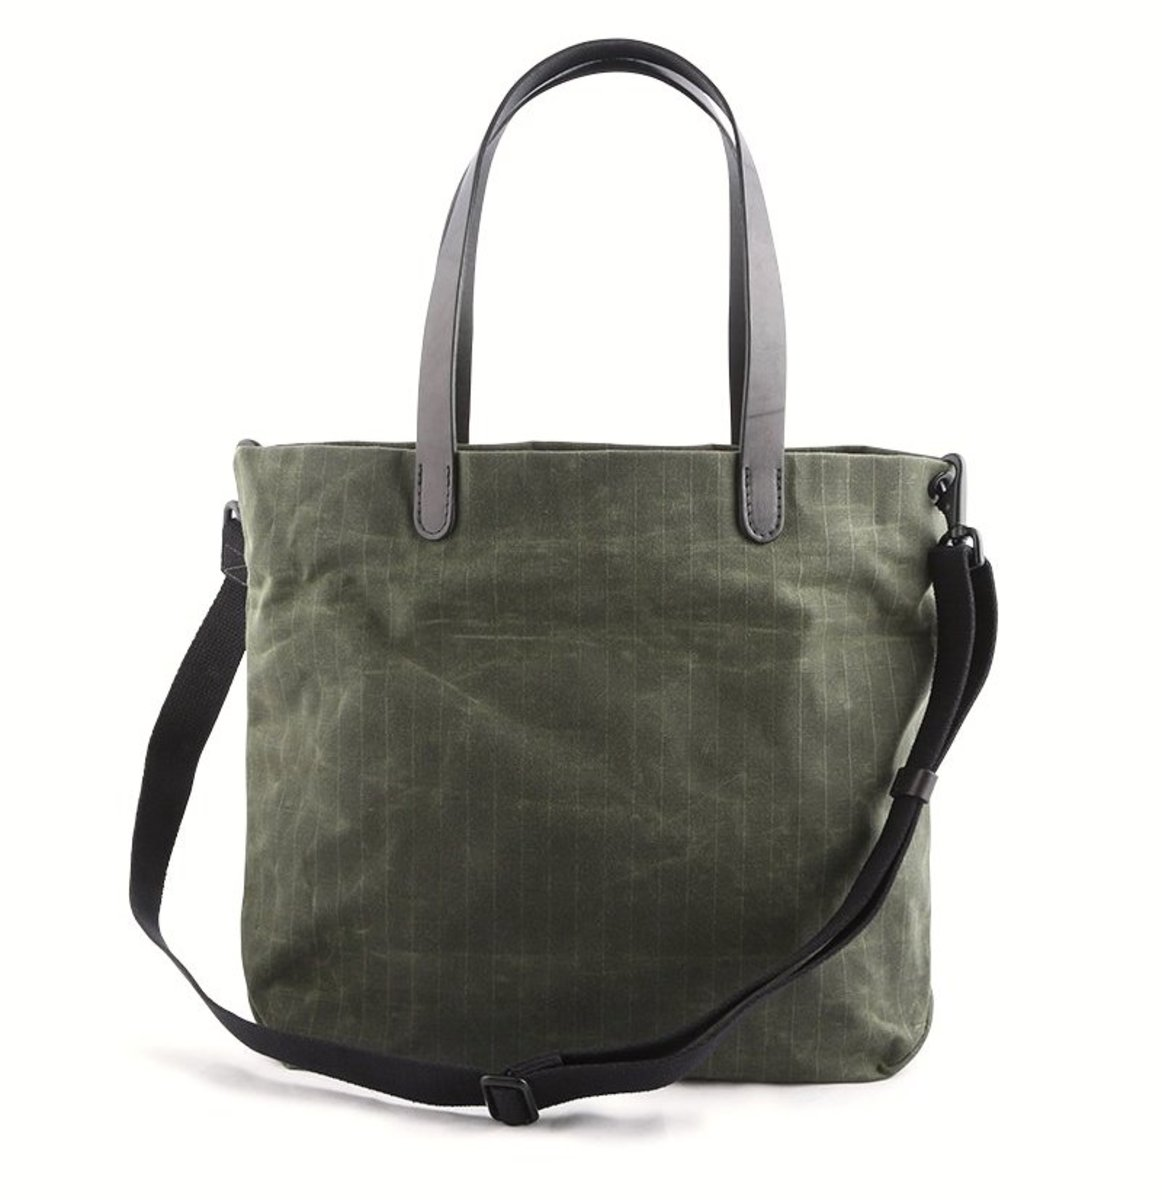 TG_Product_SimpleTote_PacificMoss_101819-2_900x